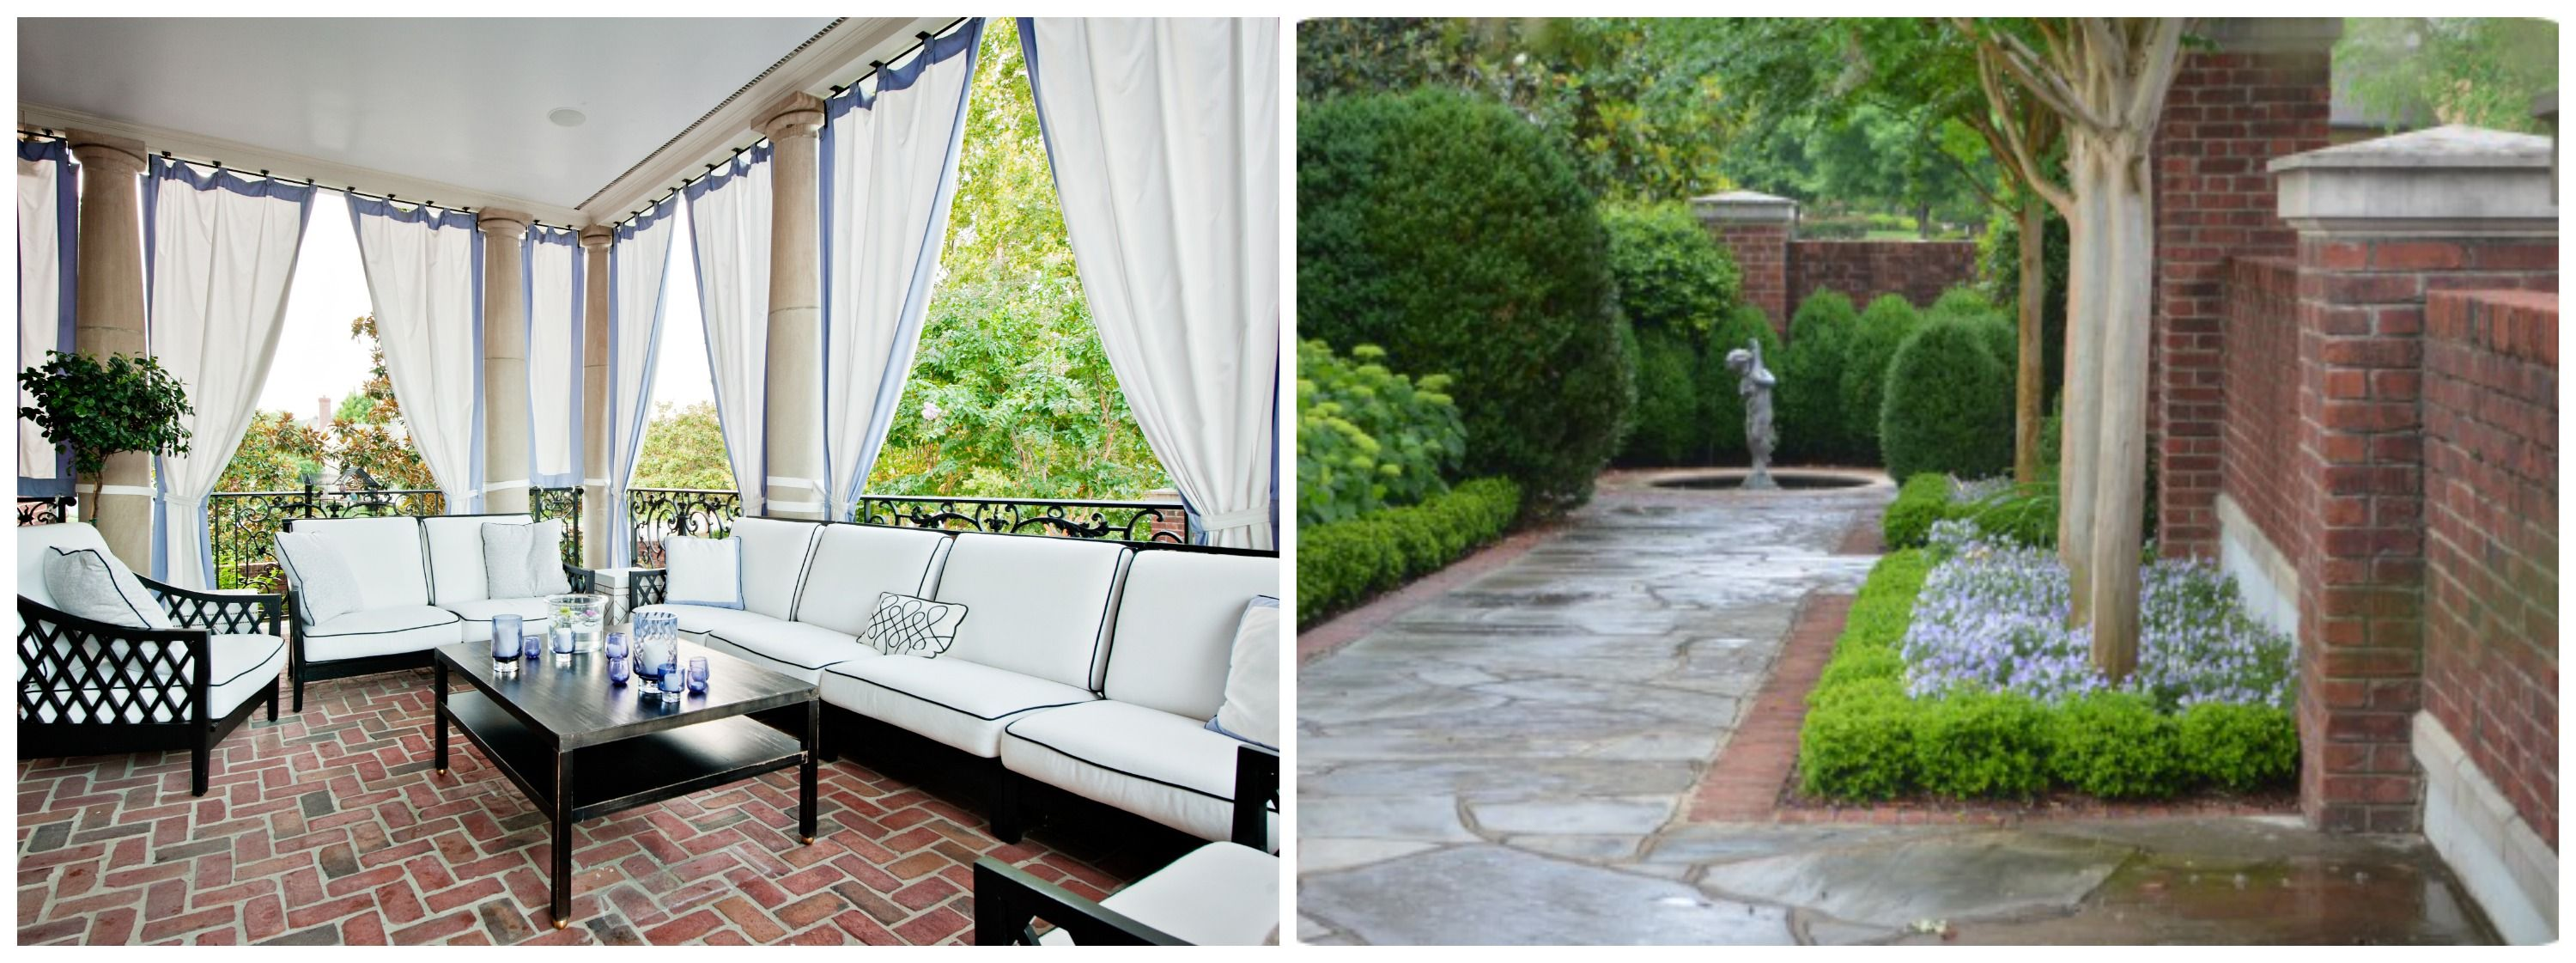 Pools, Porches, Patios And Pits: 11 Outdoor Spaces Youu0027ll Love!